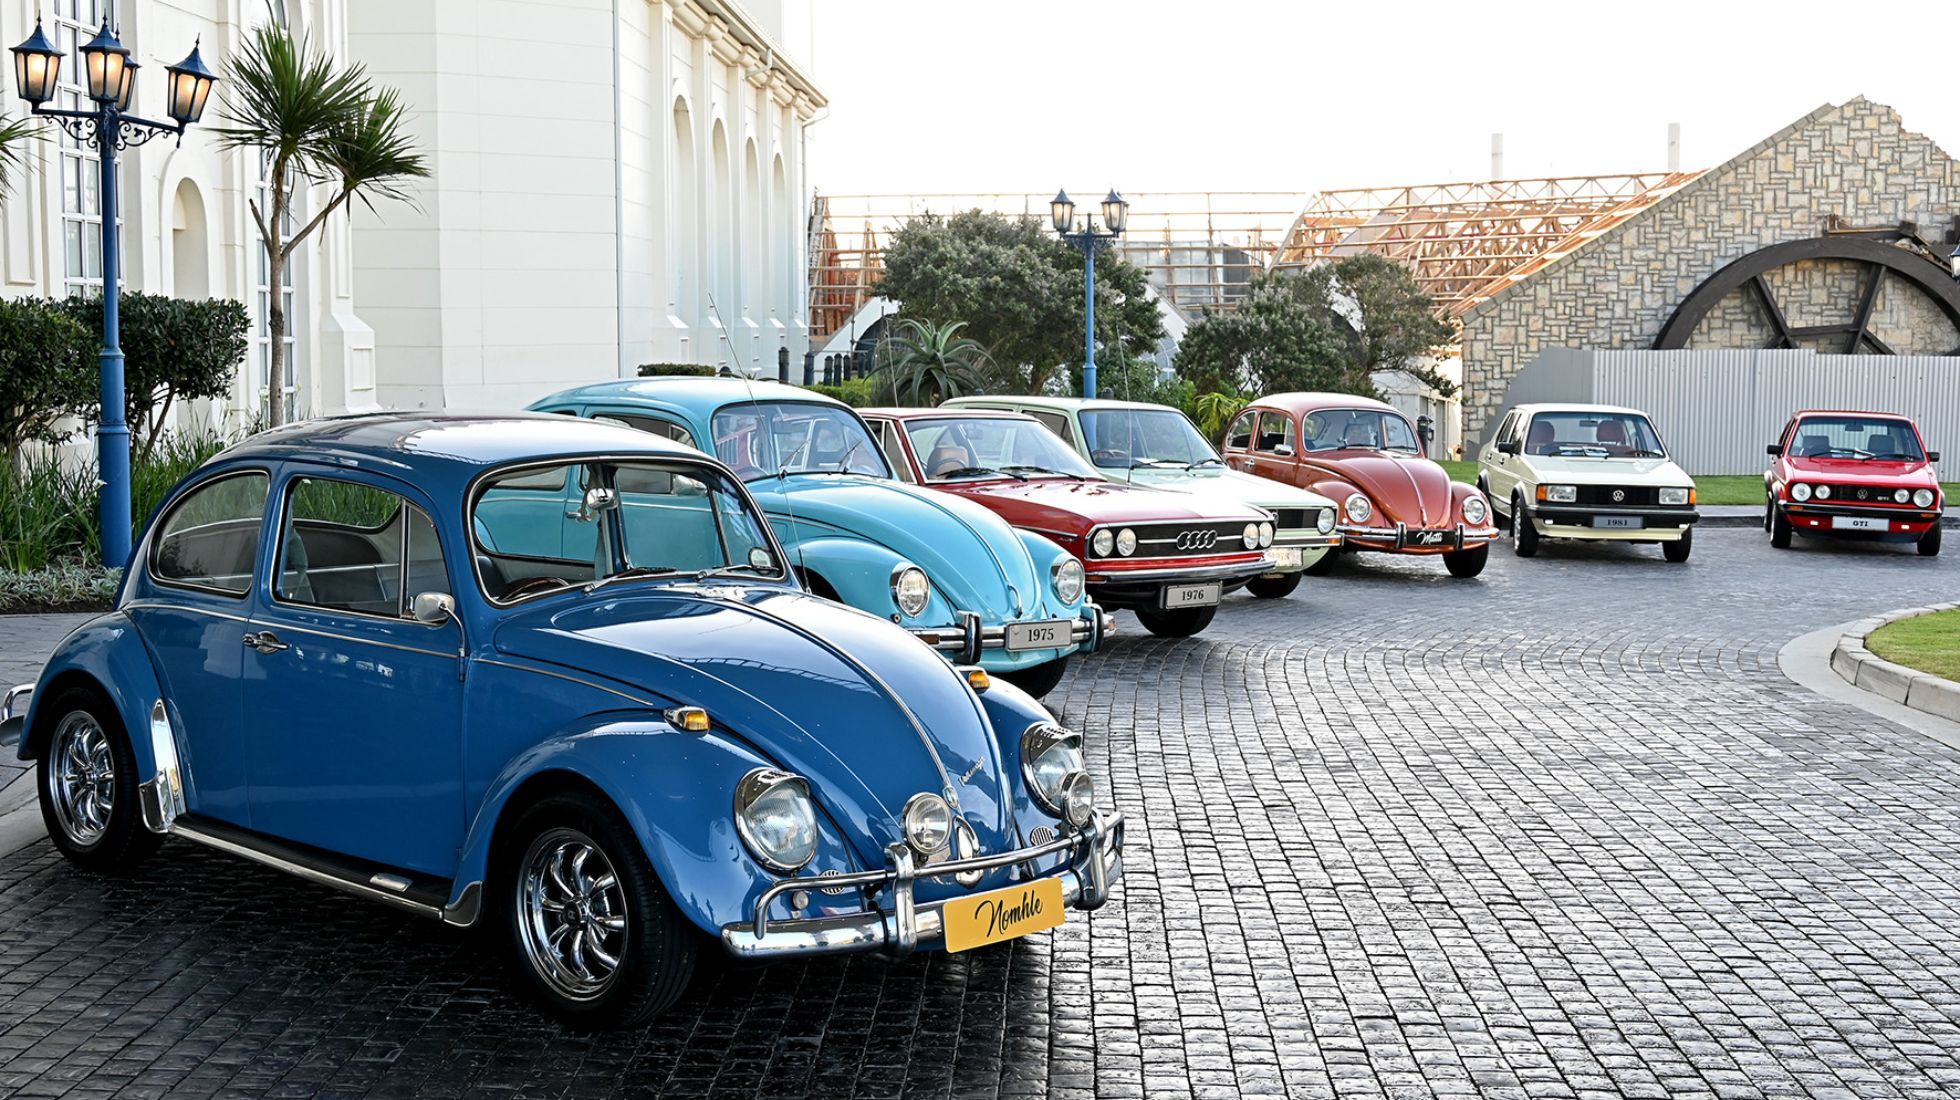 There's no sign of slowing down for VW's local arm even after 70 years of creating legends